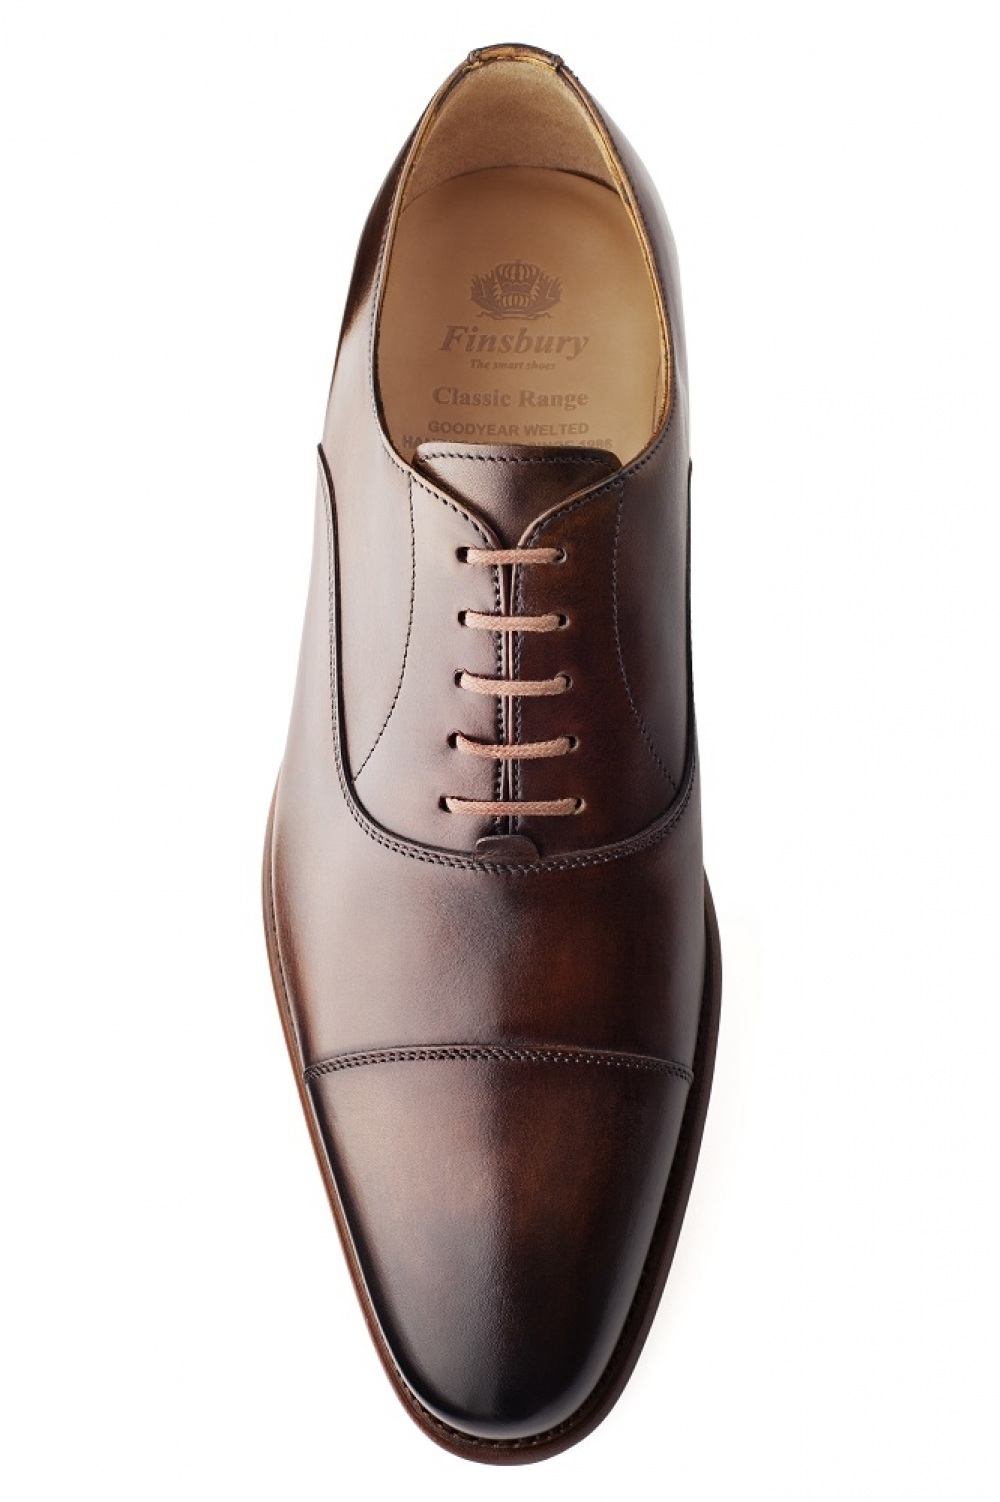 Range Consul Classic Cuir En Patiné Chaussure Noyer bWEDIeYH29